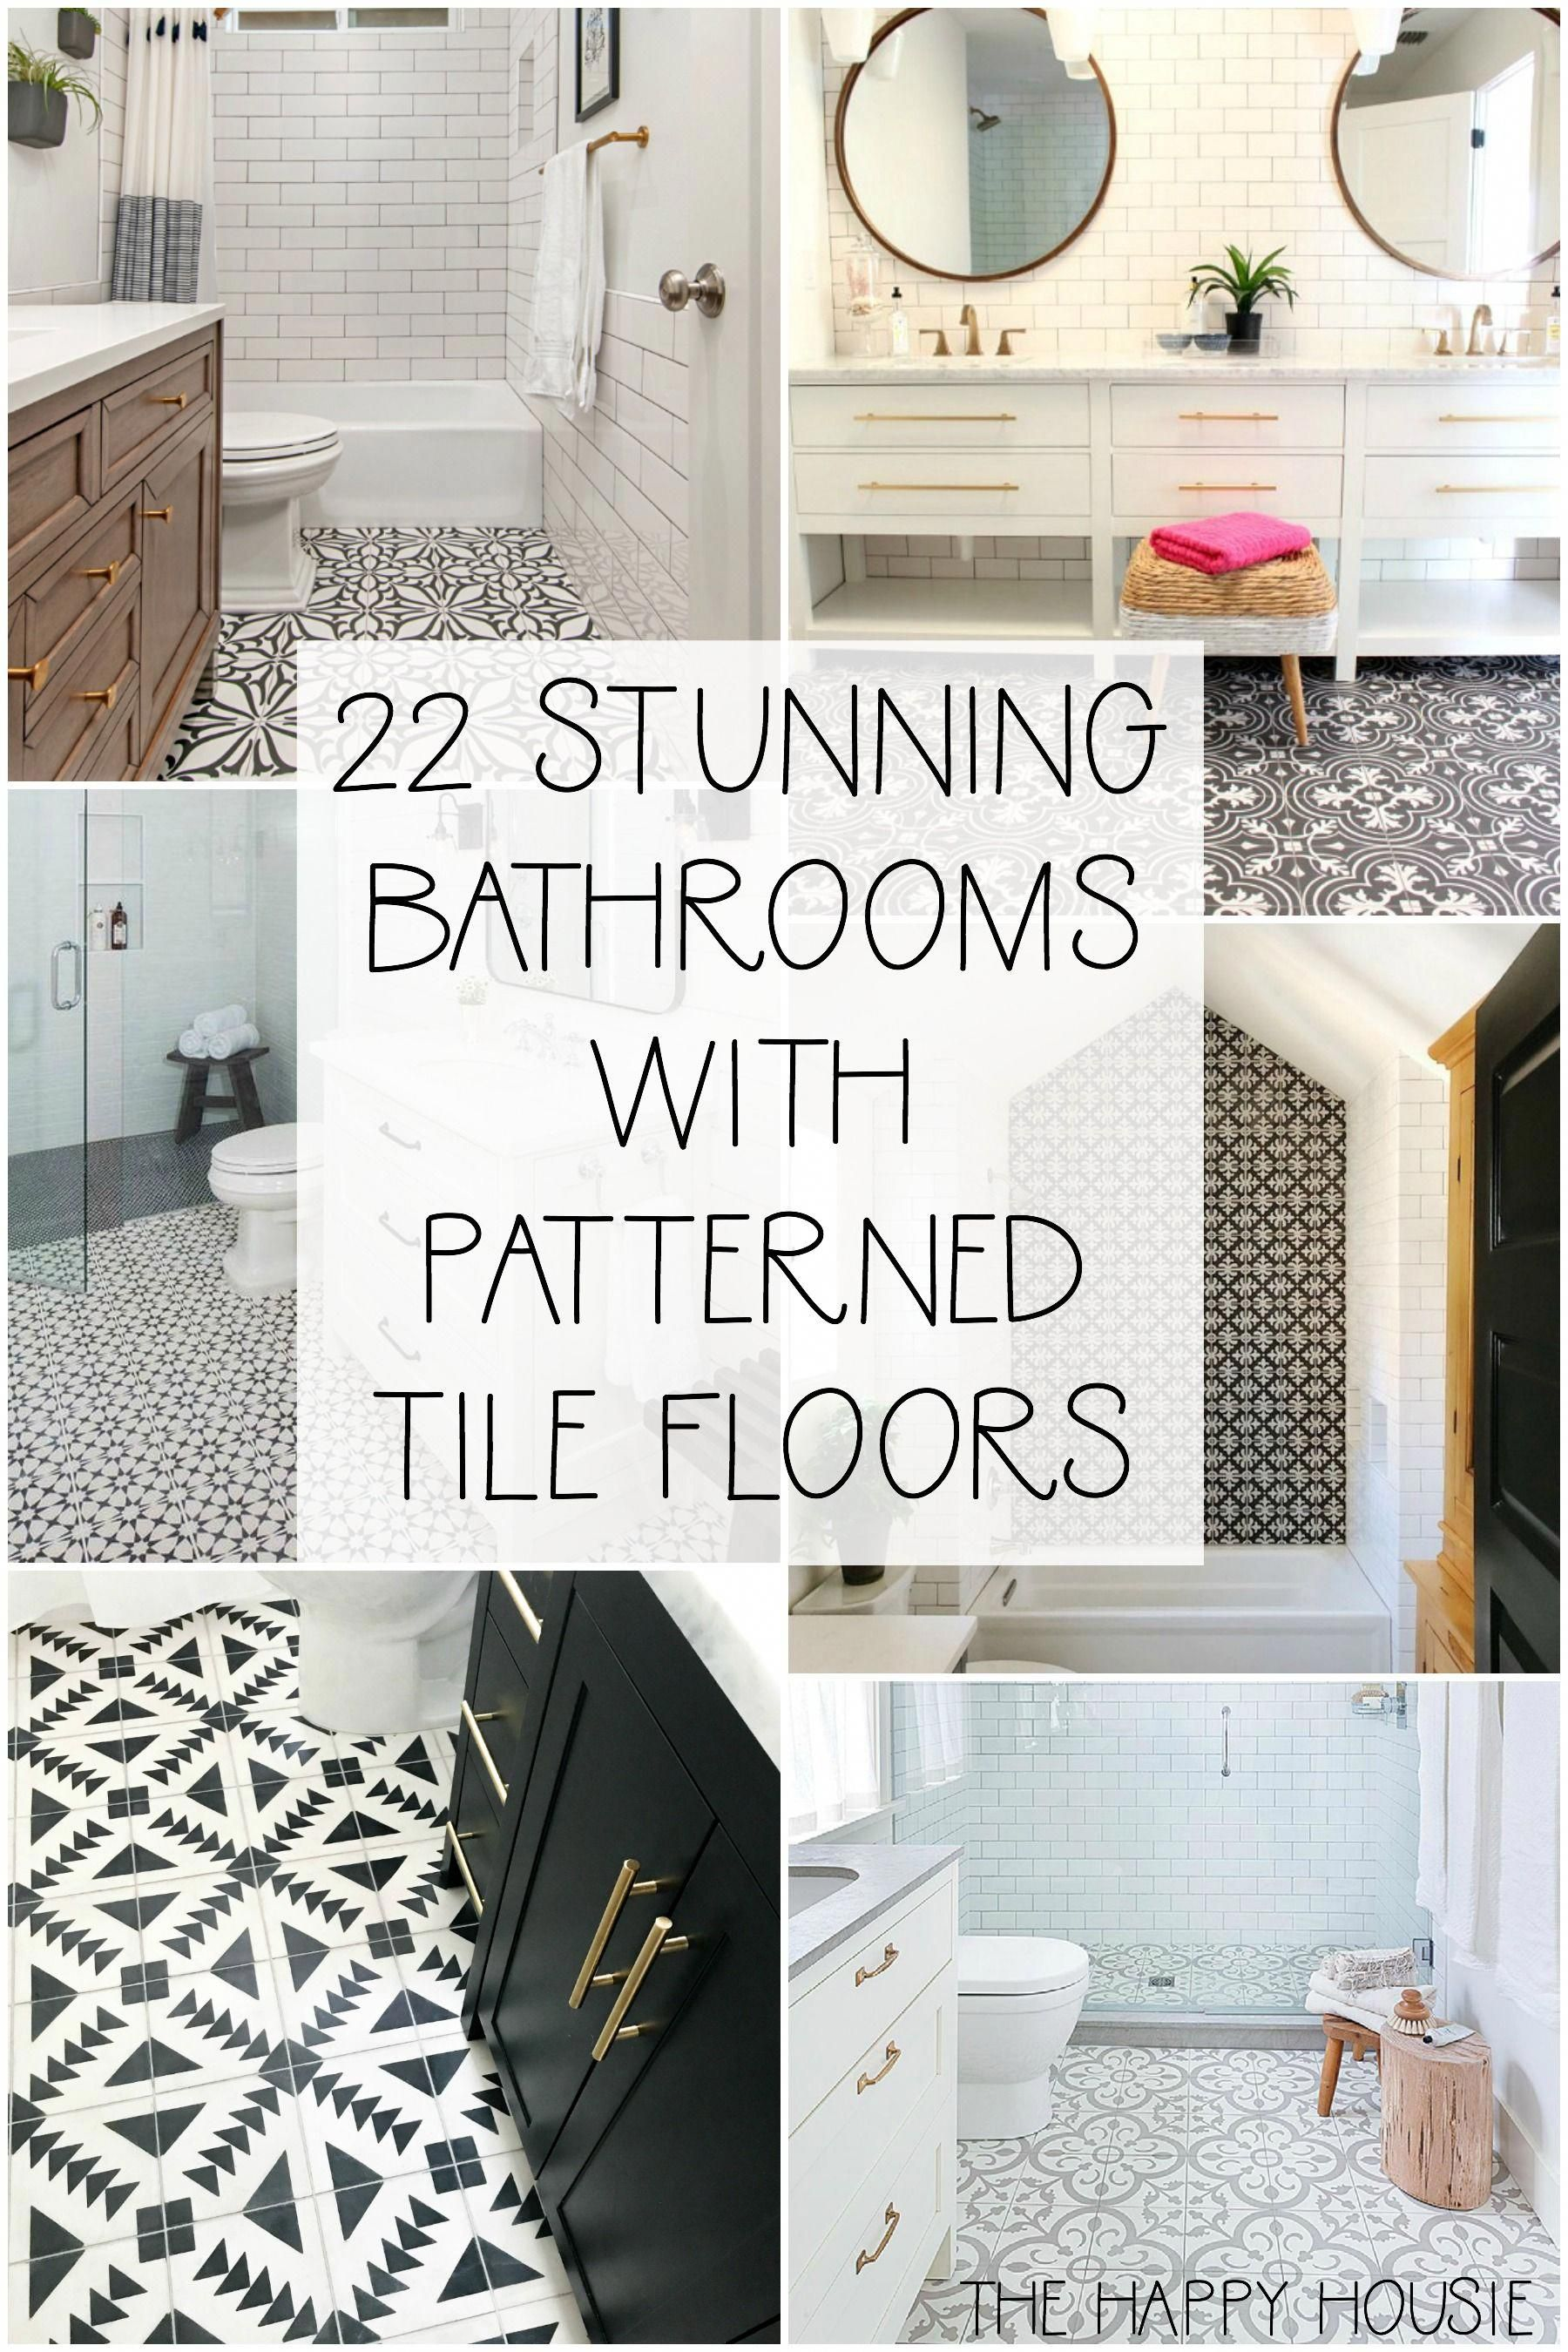 Cement Tile Patterned Tile Floors In The Bathroom The Happy Housie Patterned Floor Tiles Patterned Bathroom Tiles Bathroom Interior Design